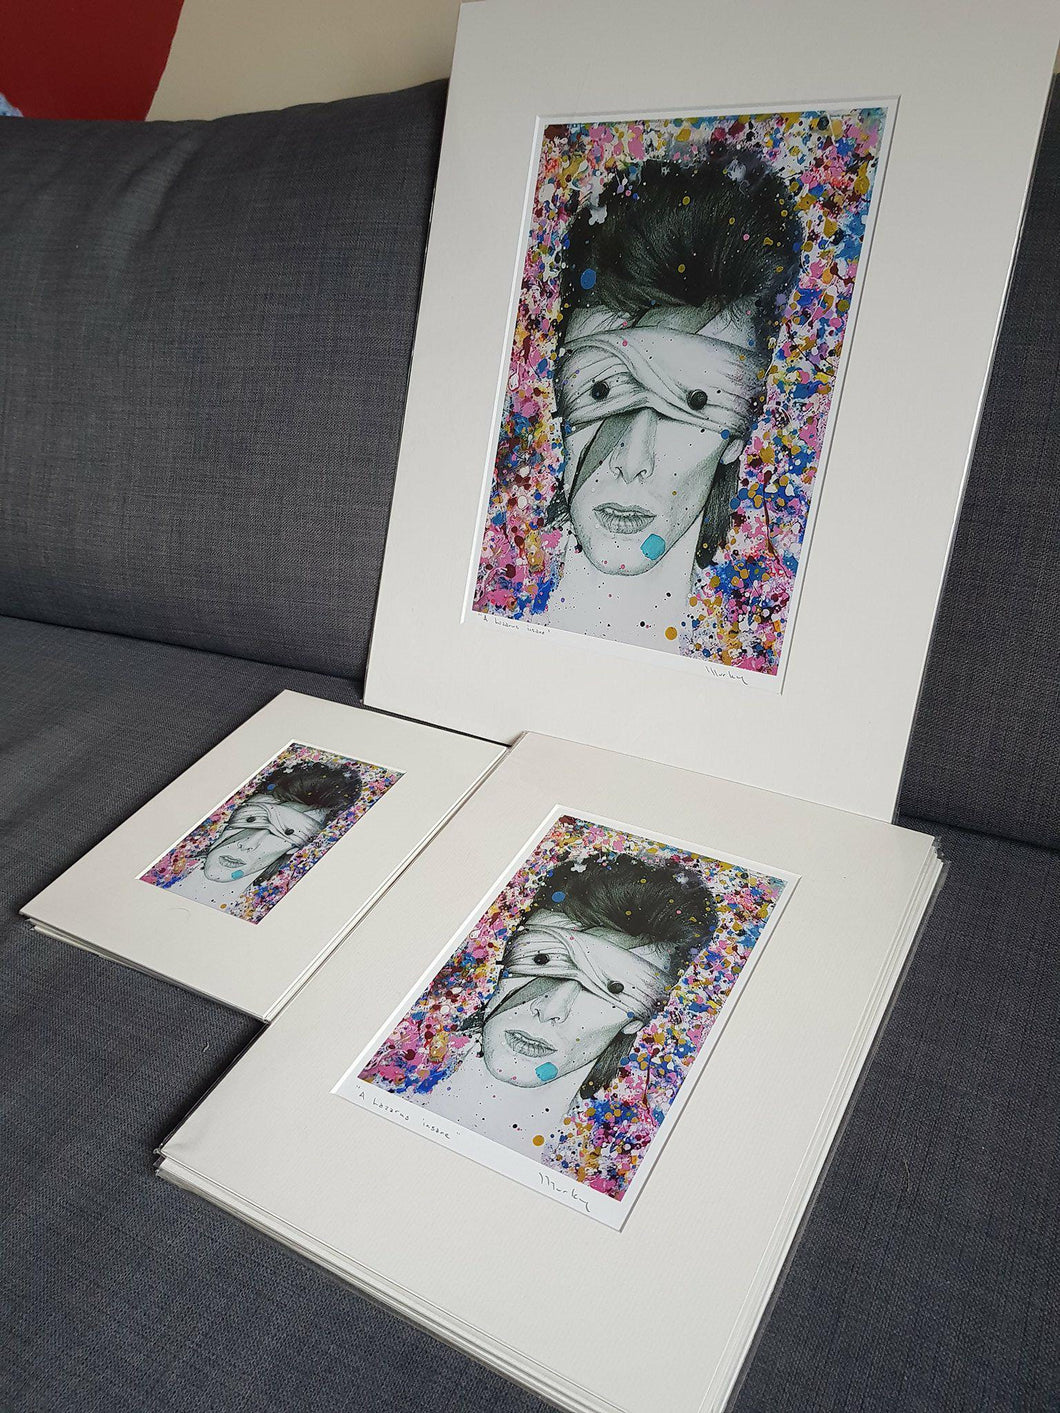 Mounted, wrapped and HANDSIGNED LIMITED EDITION David Bowie Aladdin Sane as Lazarus black and white charcoal drawing portrait print